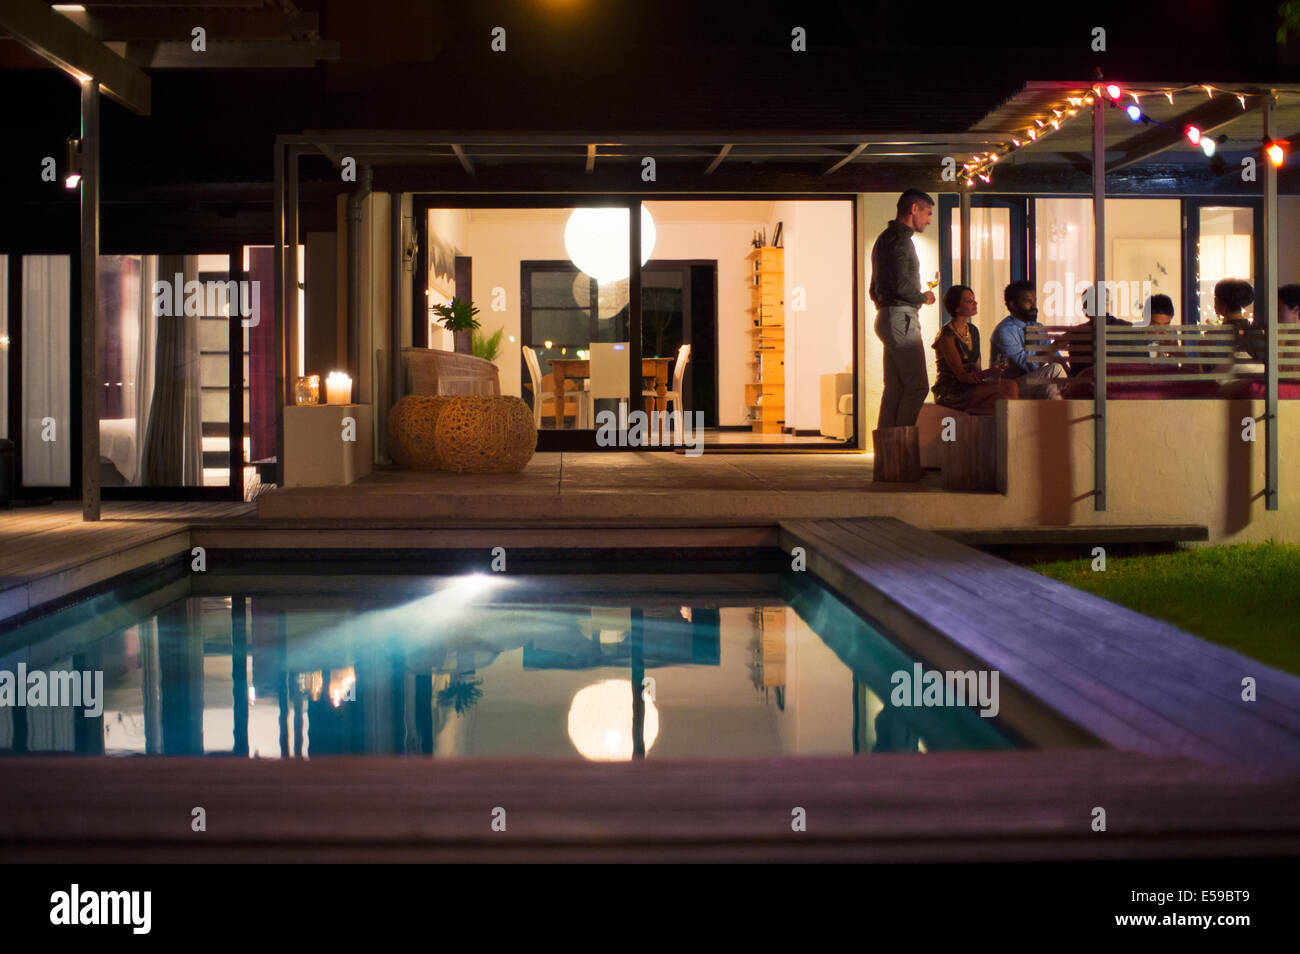 Empty pool in backyard of modern house - Stock Image